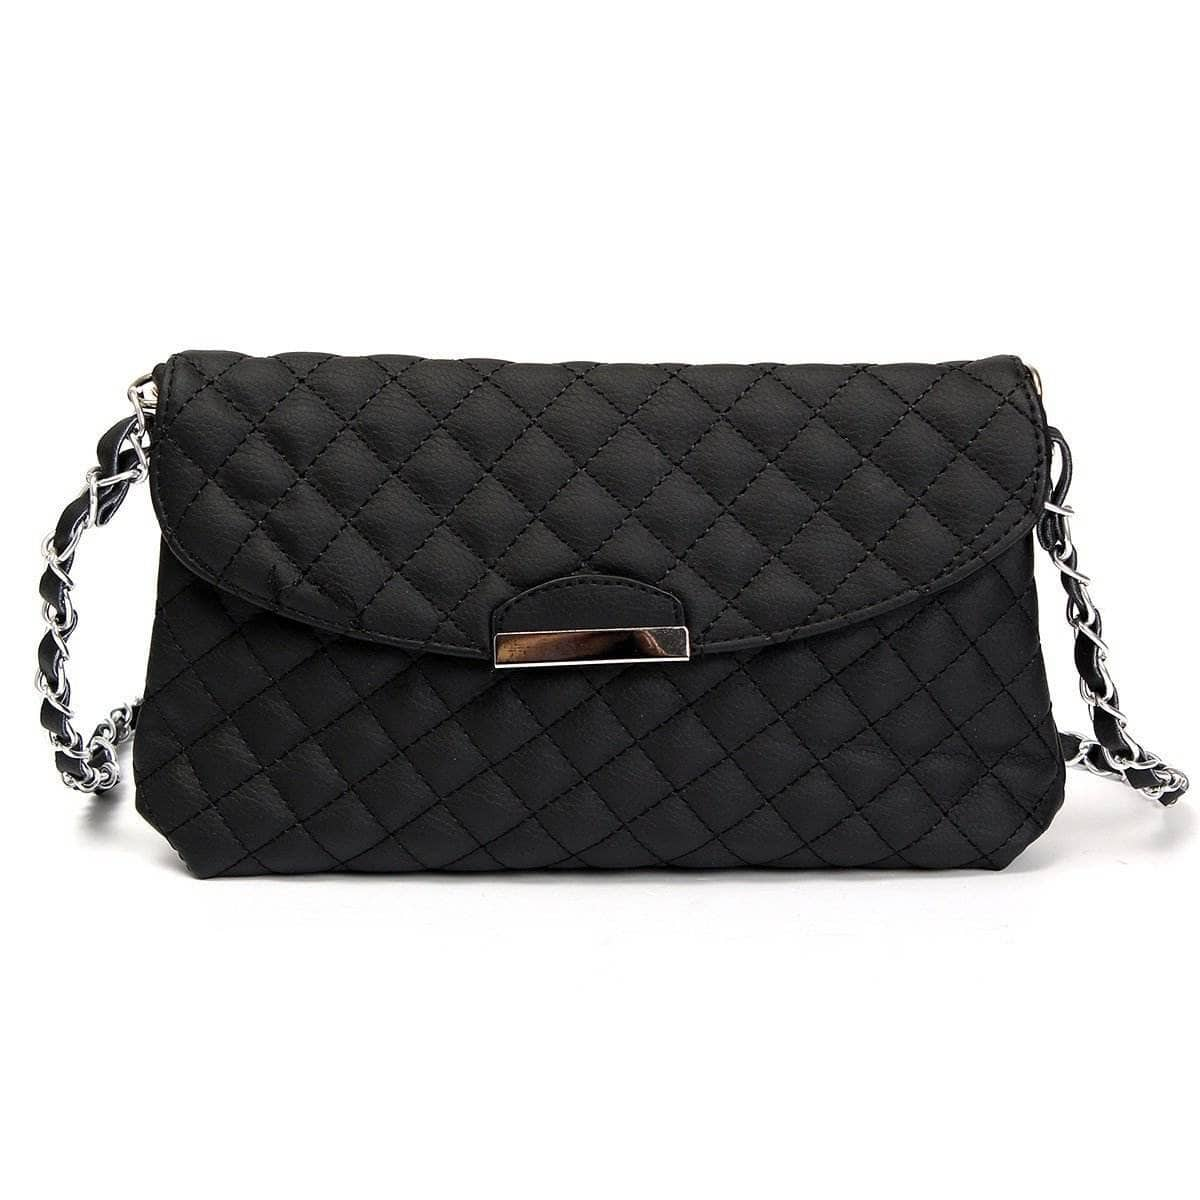 Aint Laurent Accessories Black Purse With Shoulder Strap - Multiple Colors